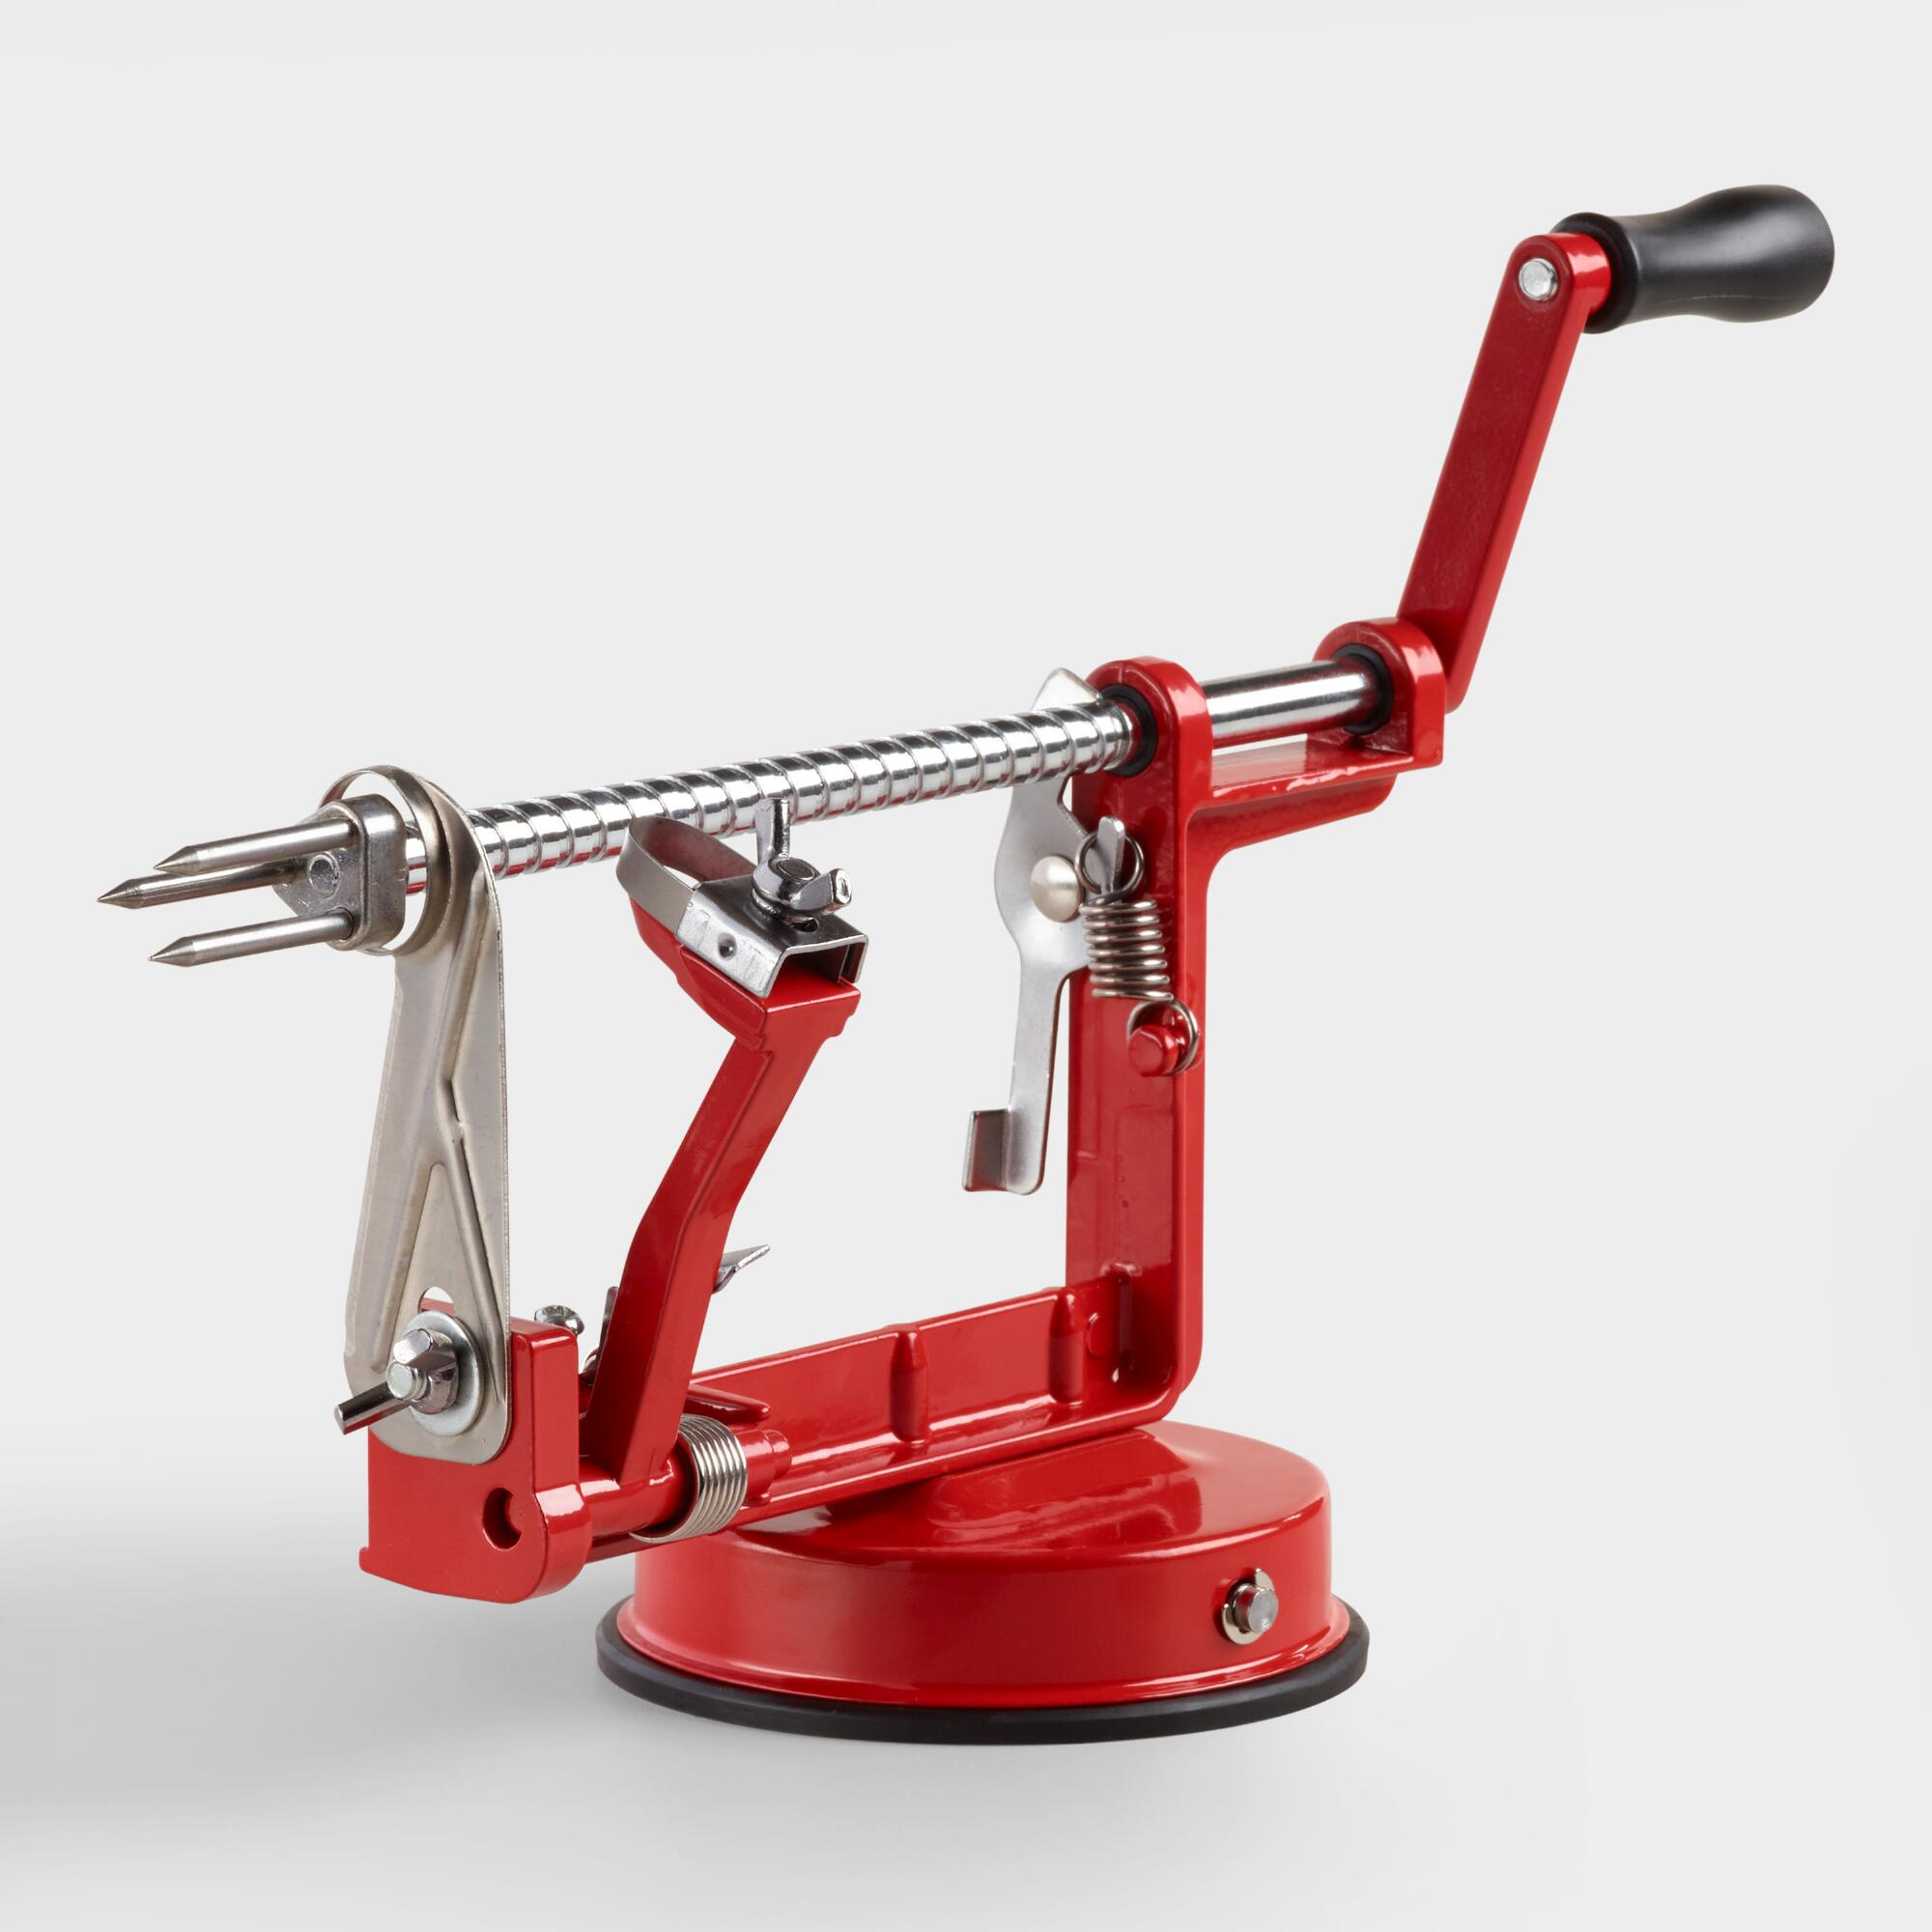 Red Enameled Cast Iron Apple Peeler, Slicer